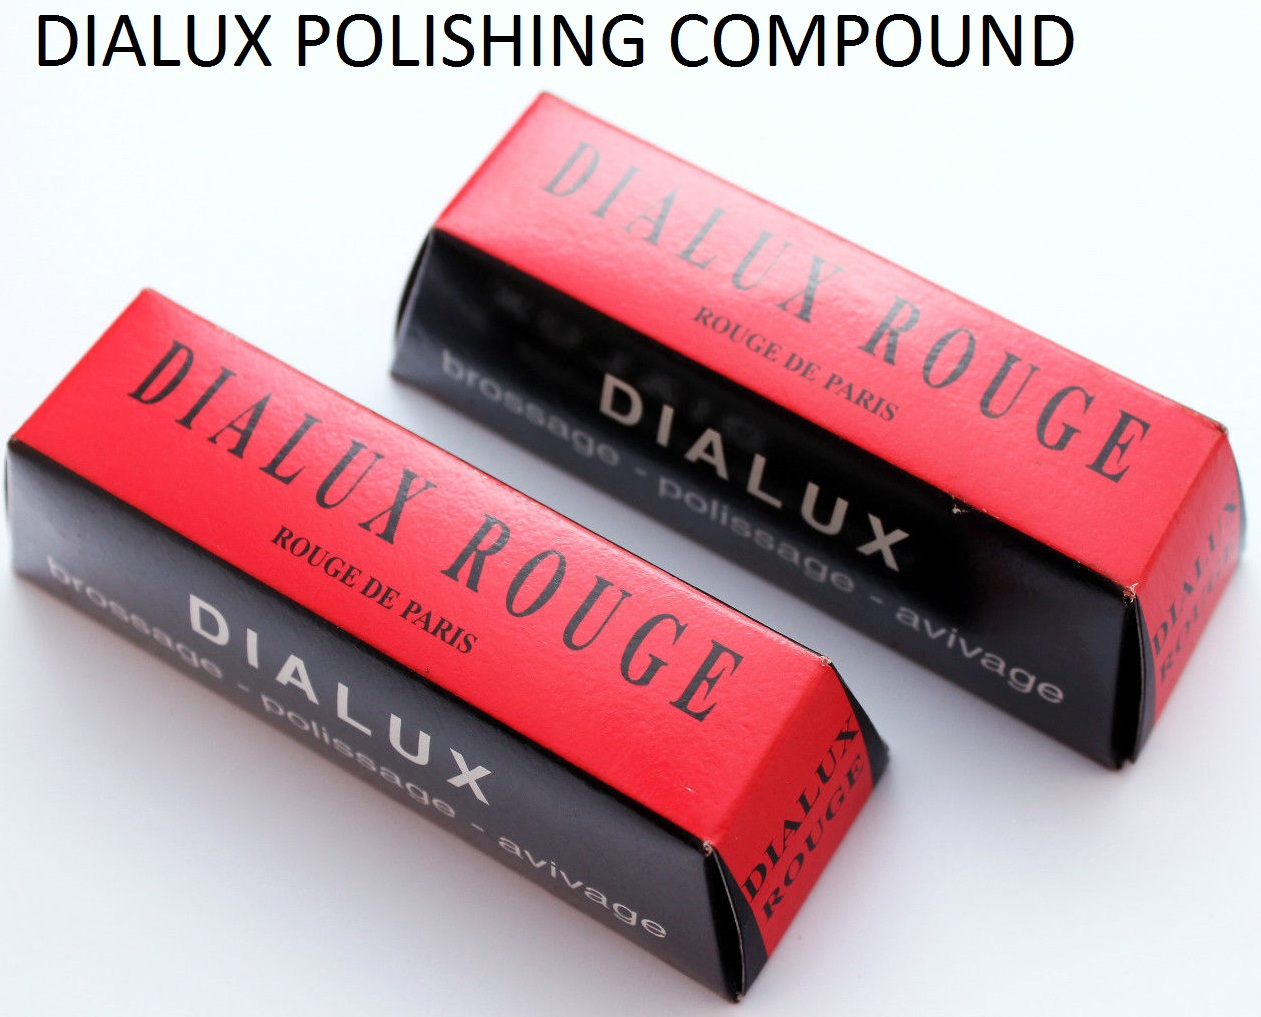 Dialux Polishing Compound, Dialux rouge